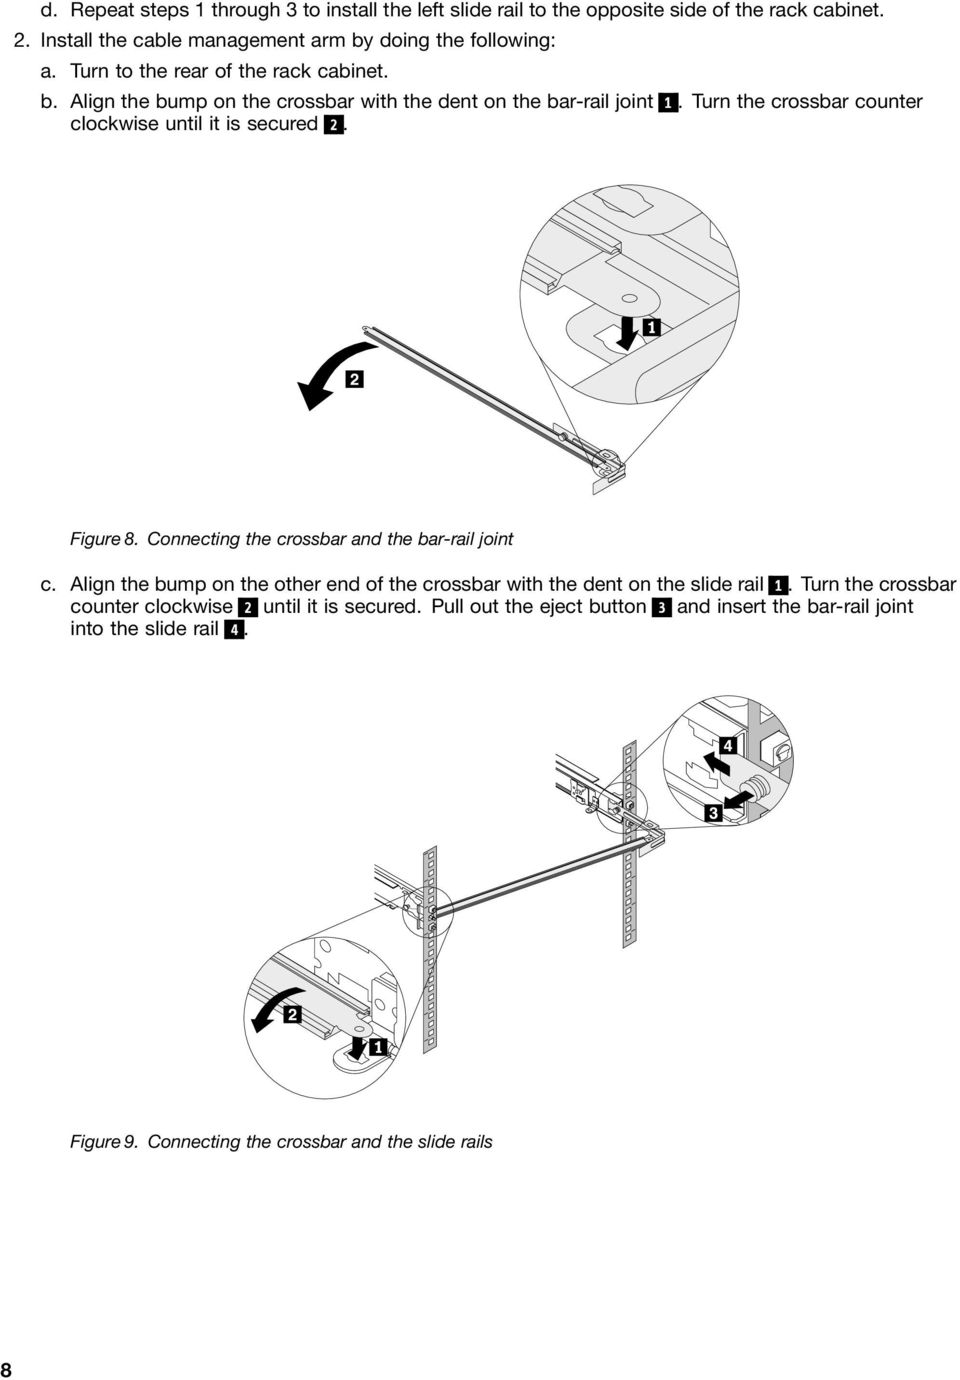 Turn the crossbar counter clockwise until it is secured 2. Figure 8. Connecting the crossbar and the bar-rail joint c.